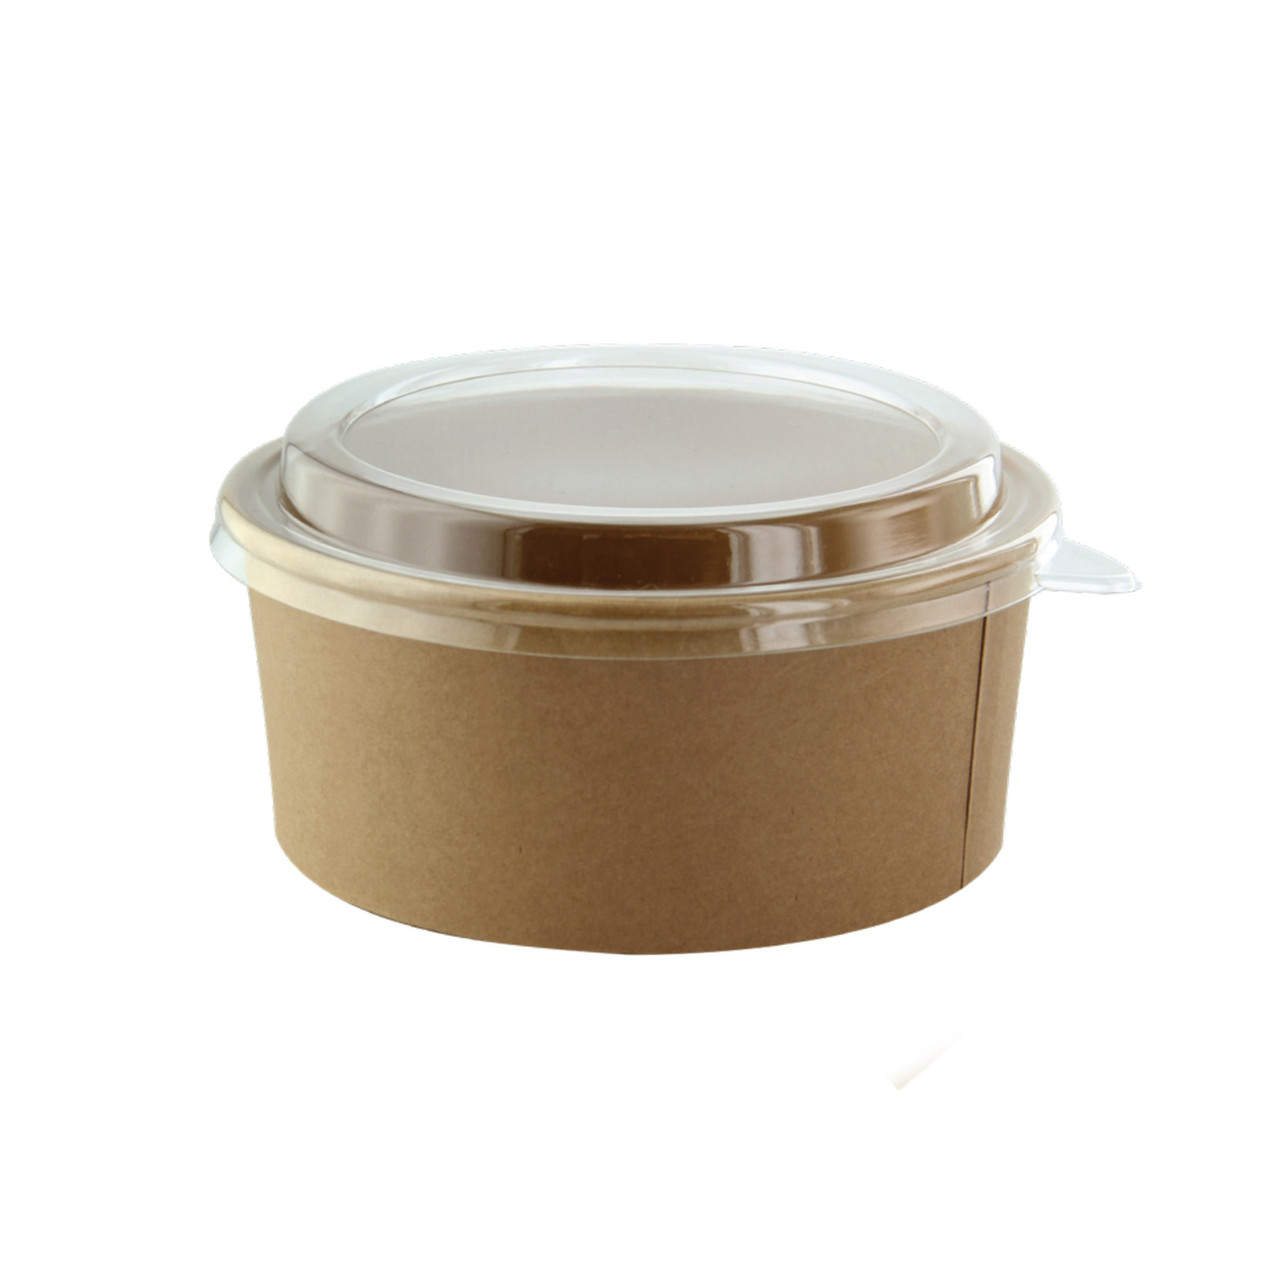 Round Kraft Salad Bucket -53oz Dia:7.25in H:3.25in